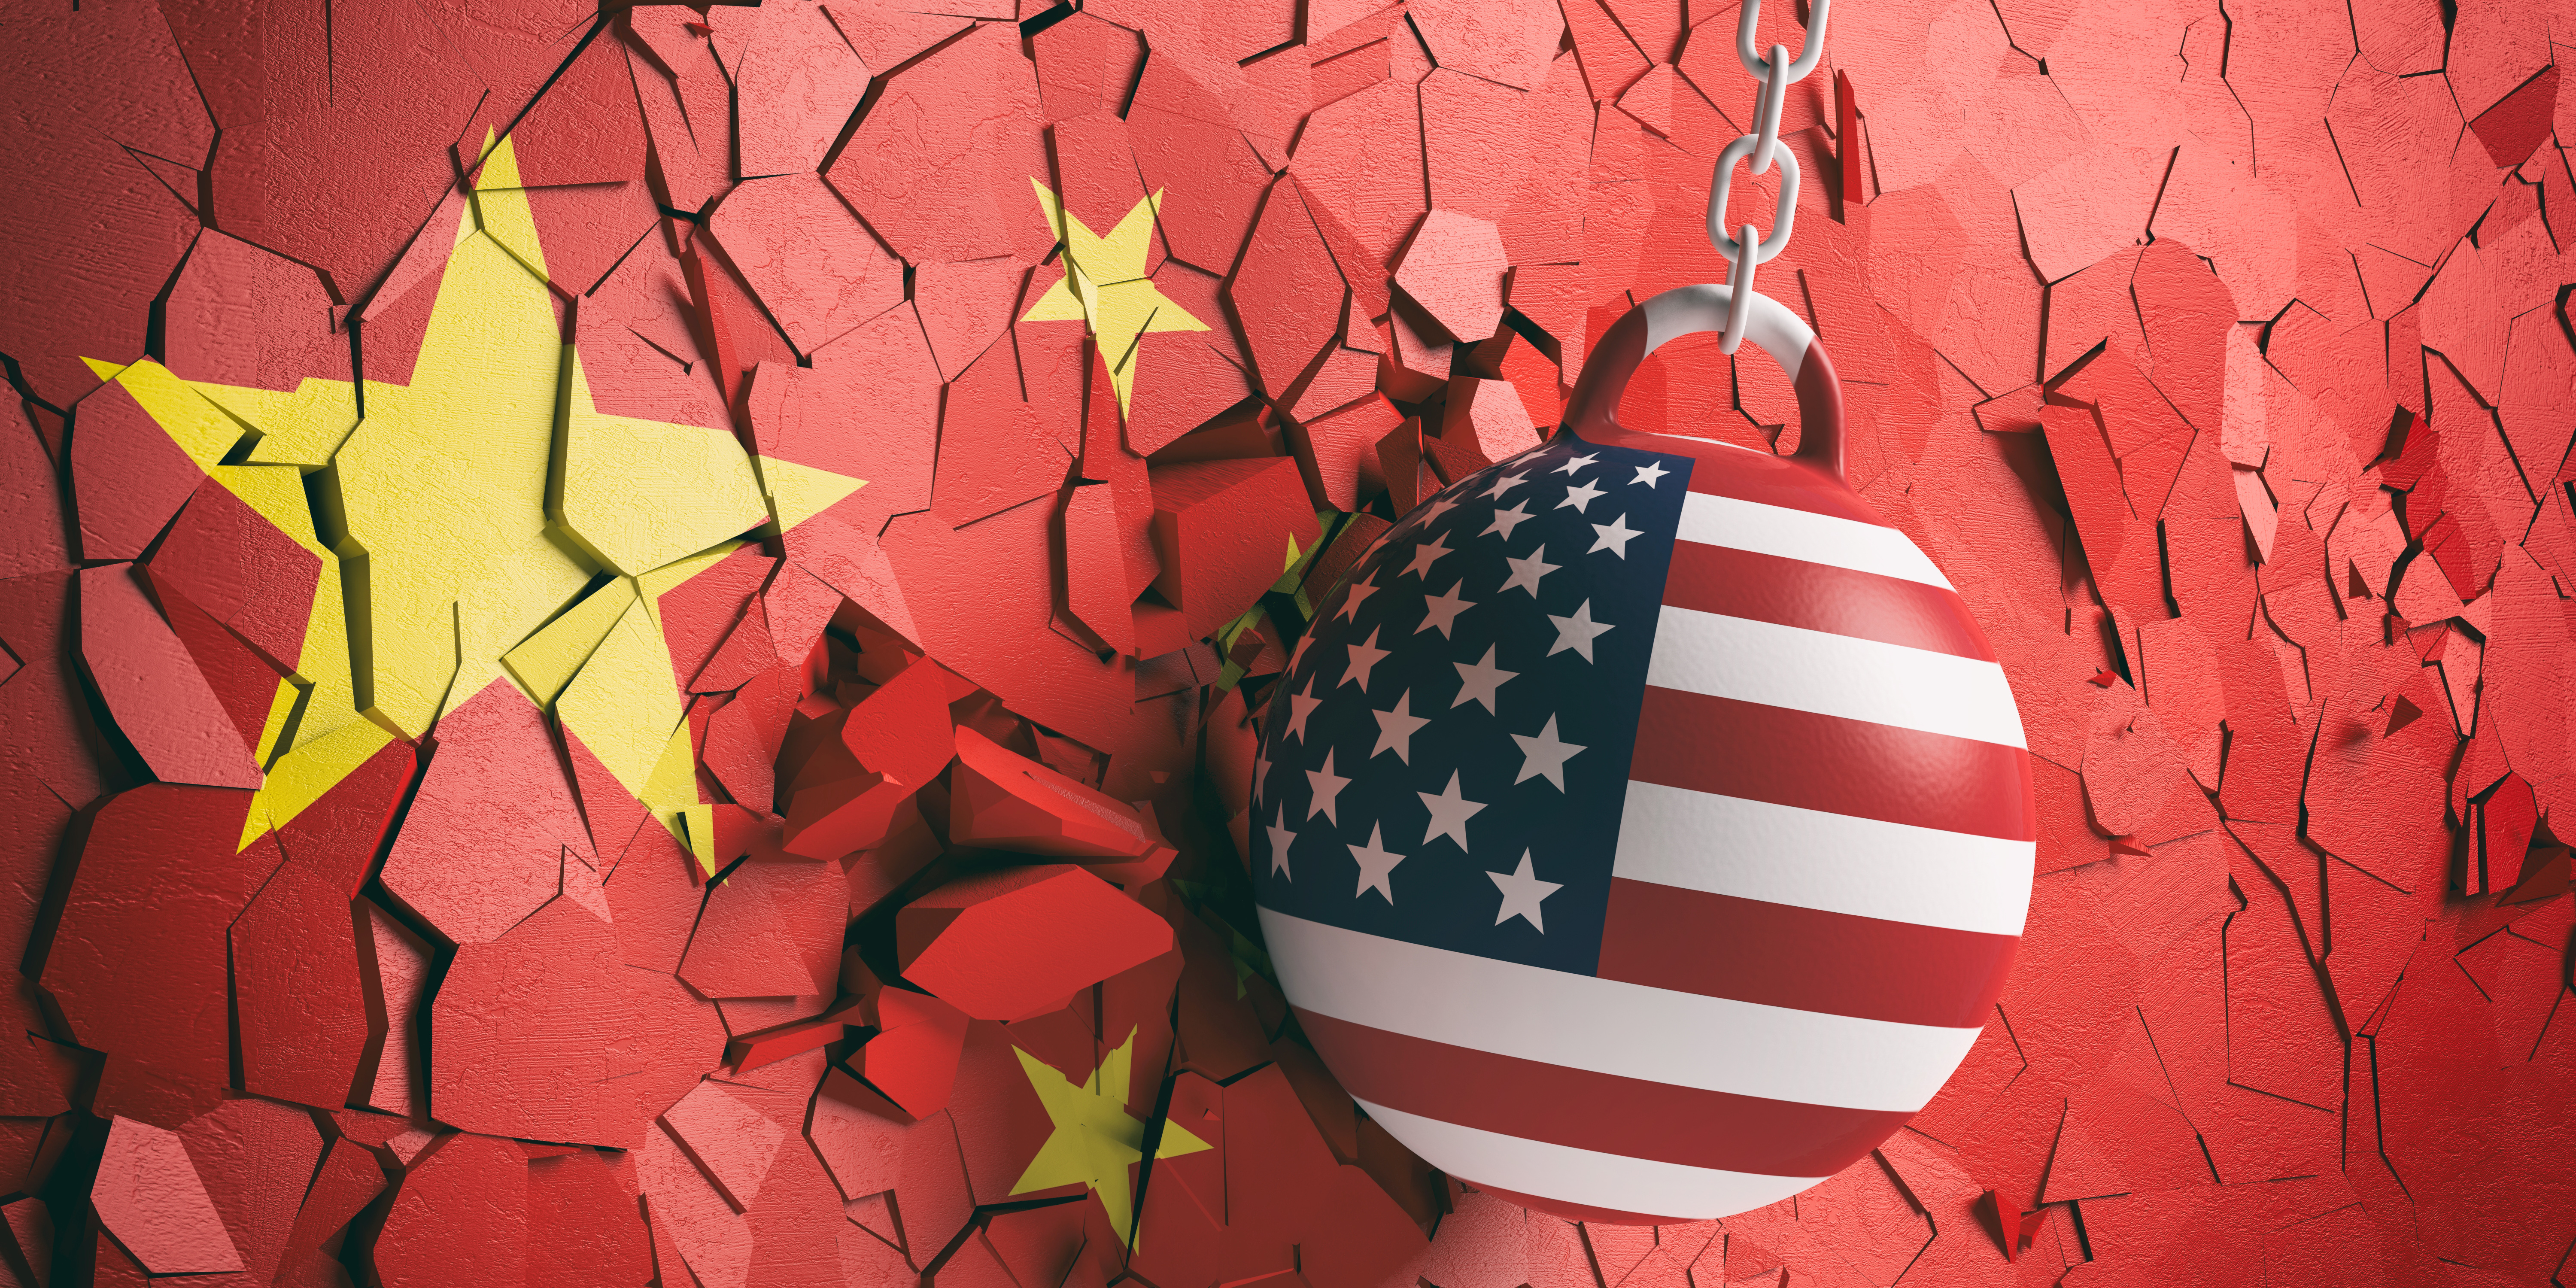 US-China Trade War: 5 Geopolitical Effects You Need to Know